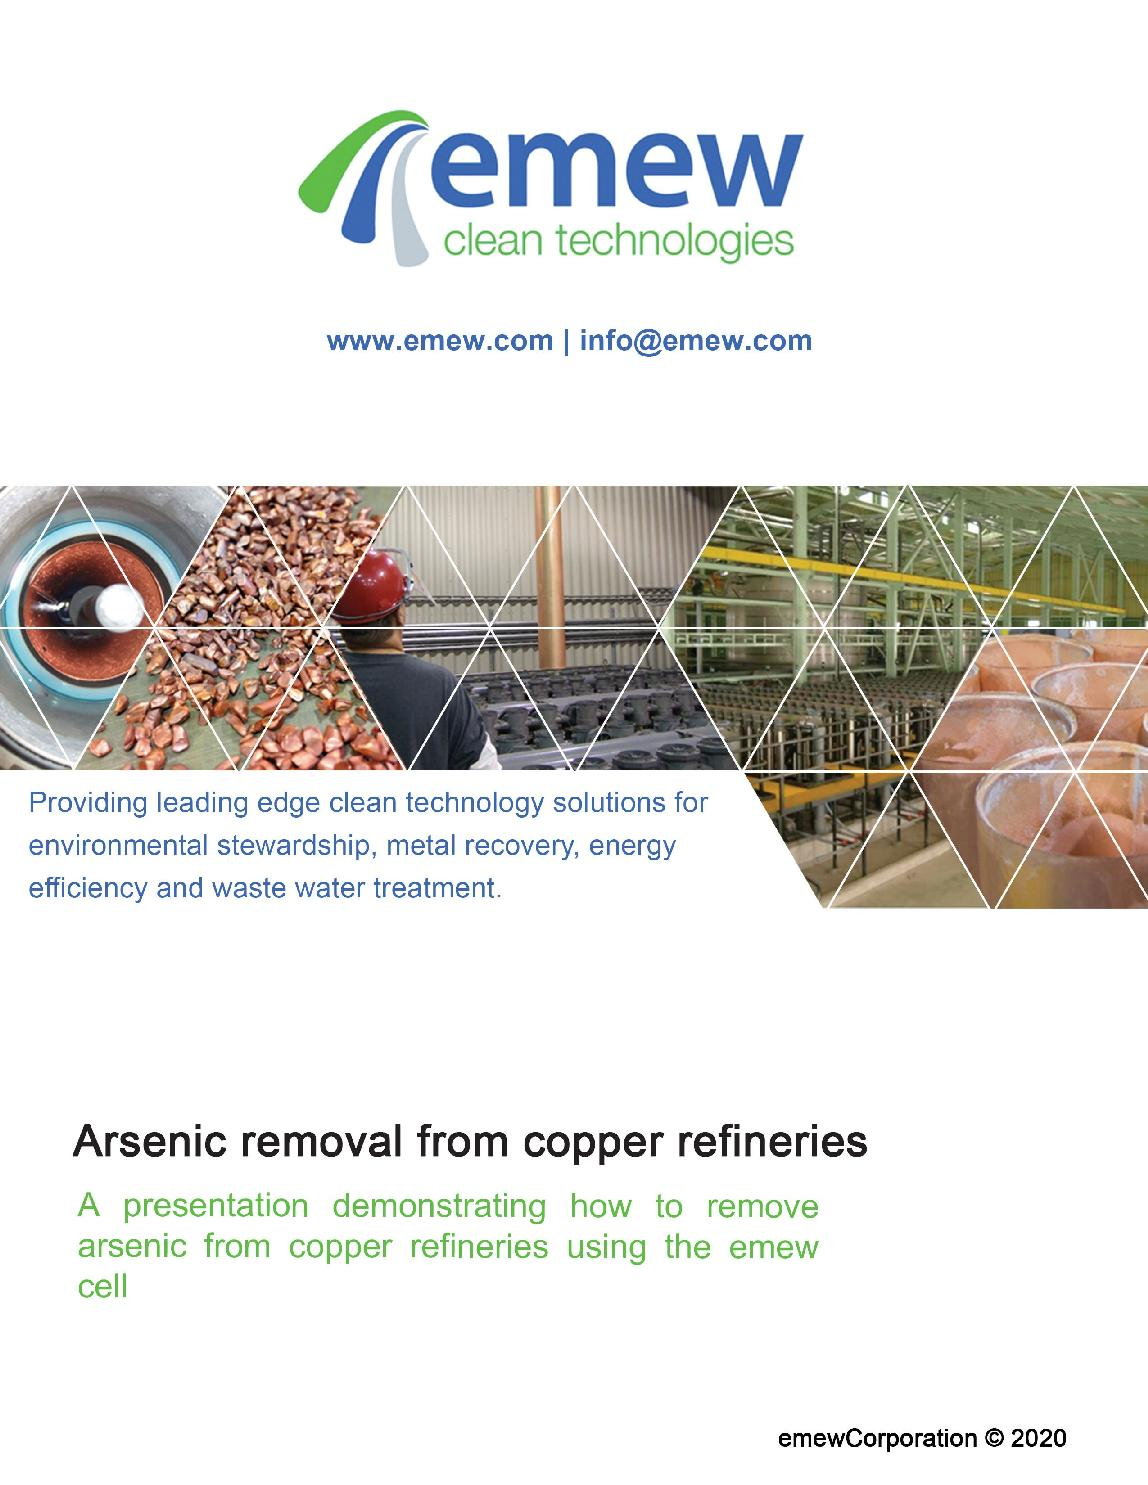 Arsenic removal from copper refineries